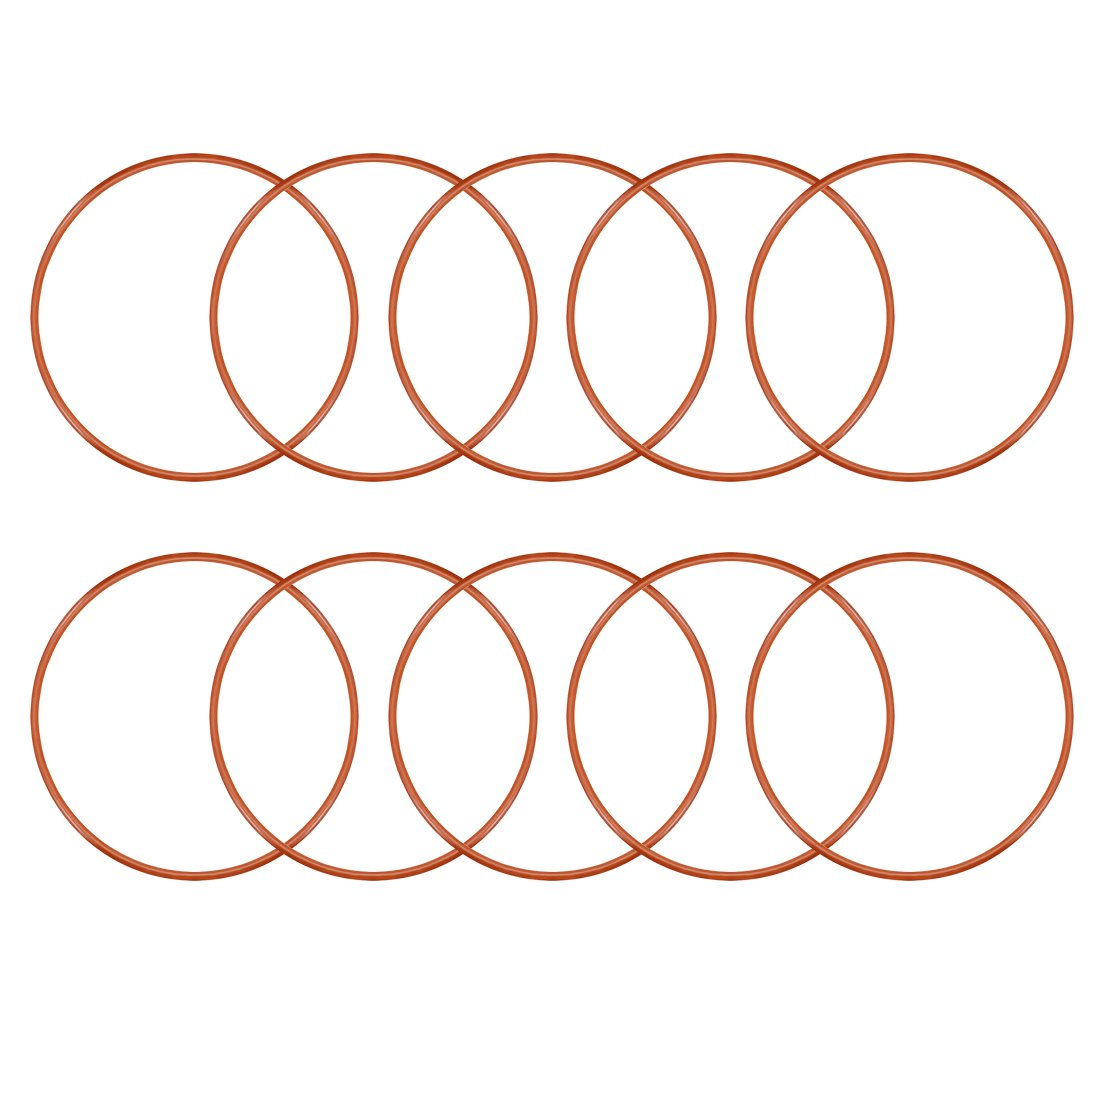 25mm x 2mm Silicone O Ring Oil Sealing Washers Grommets Red 10 Pcs